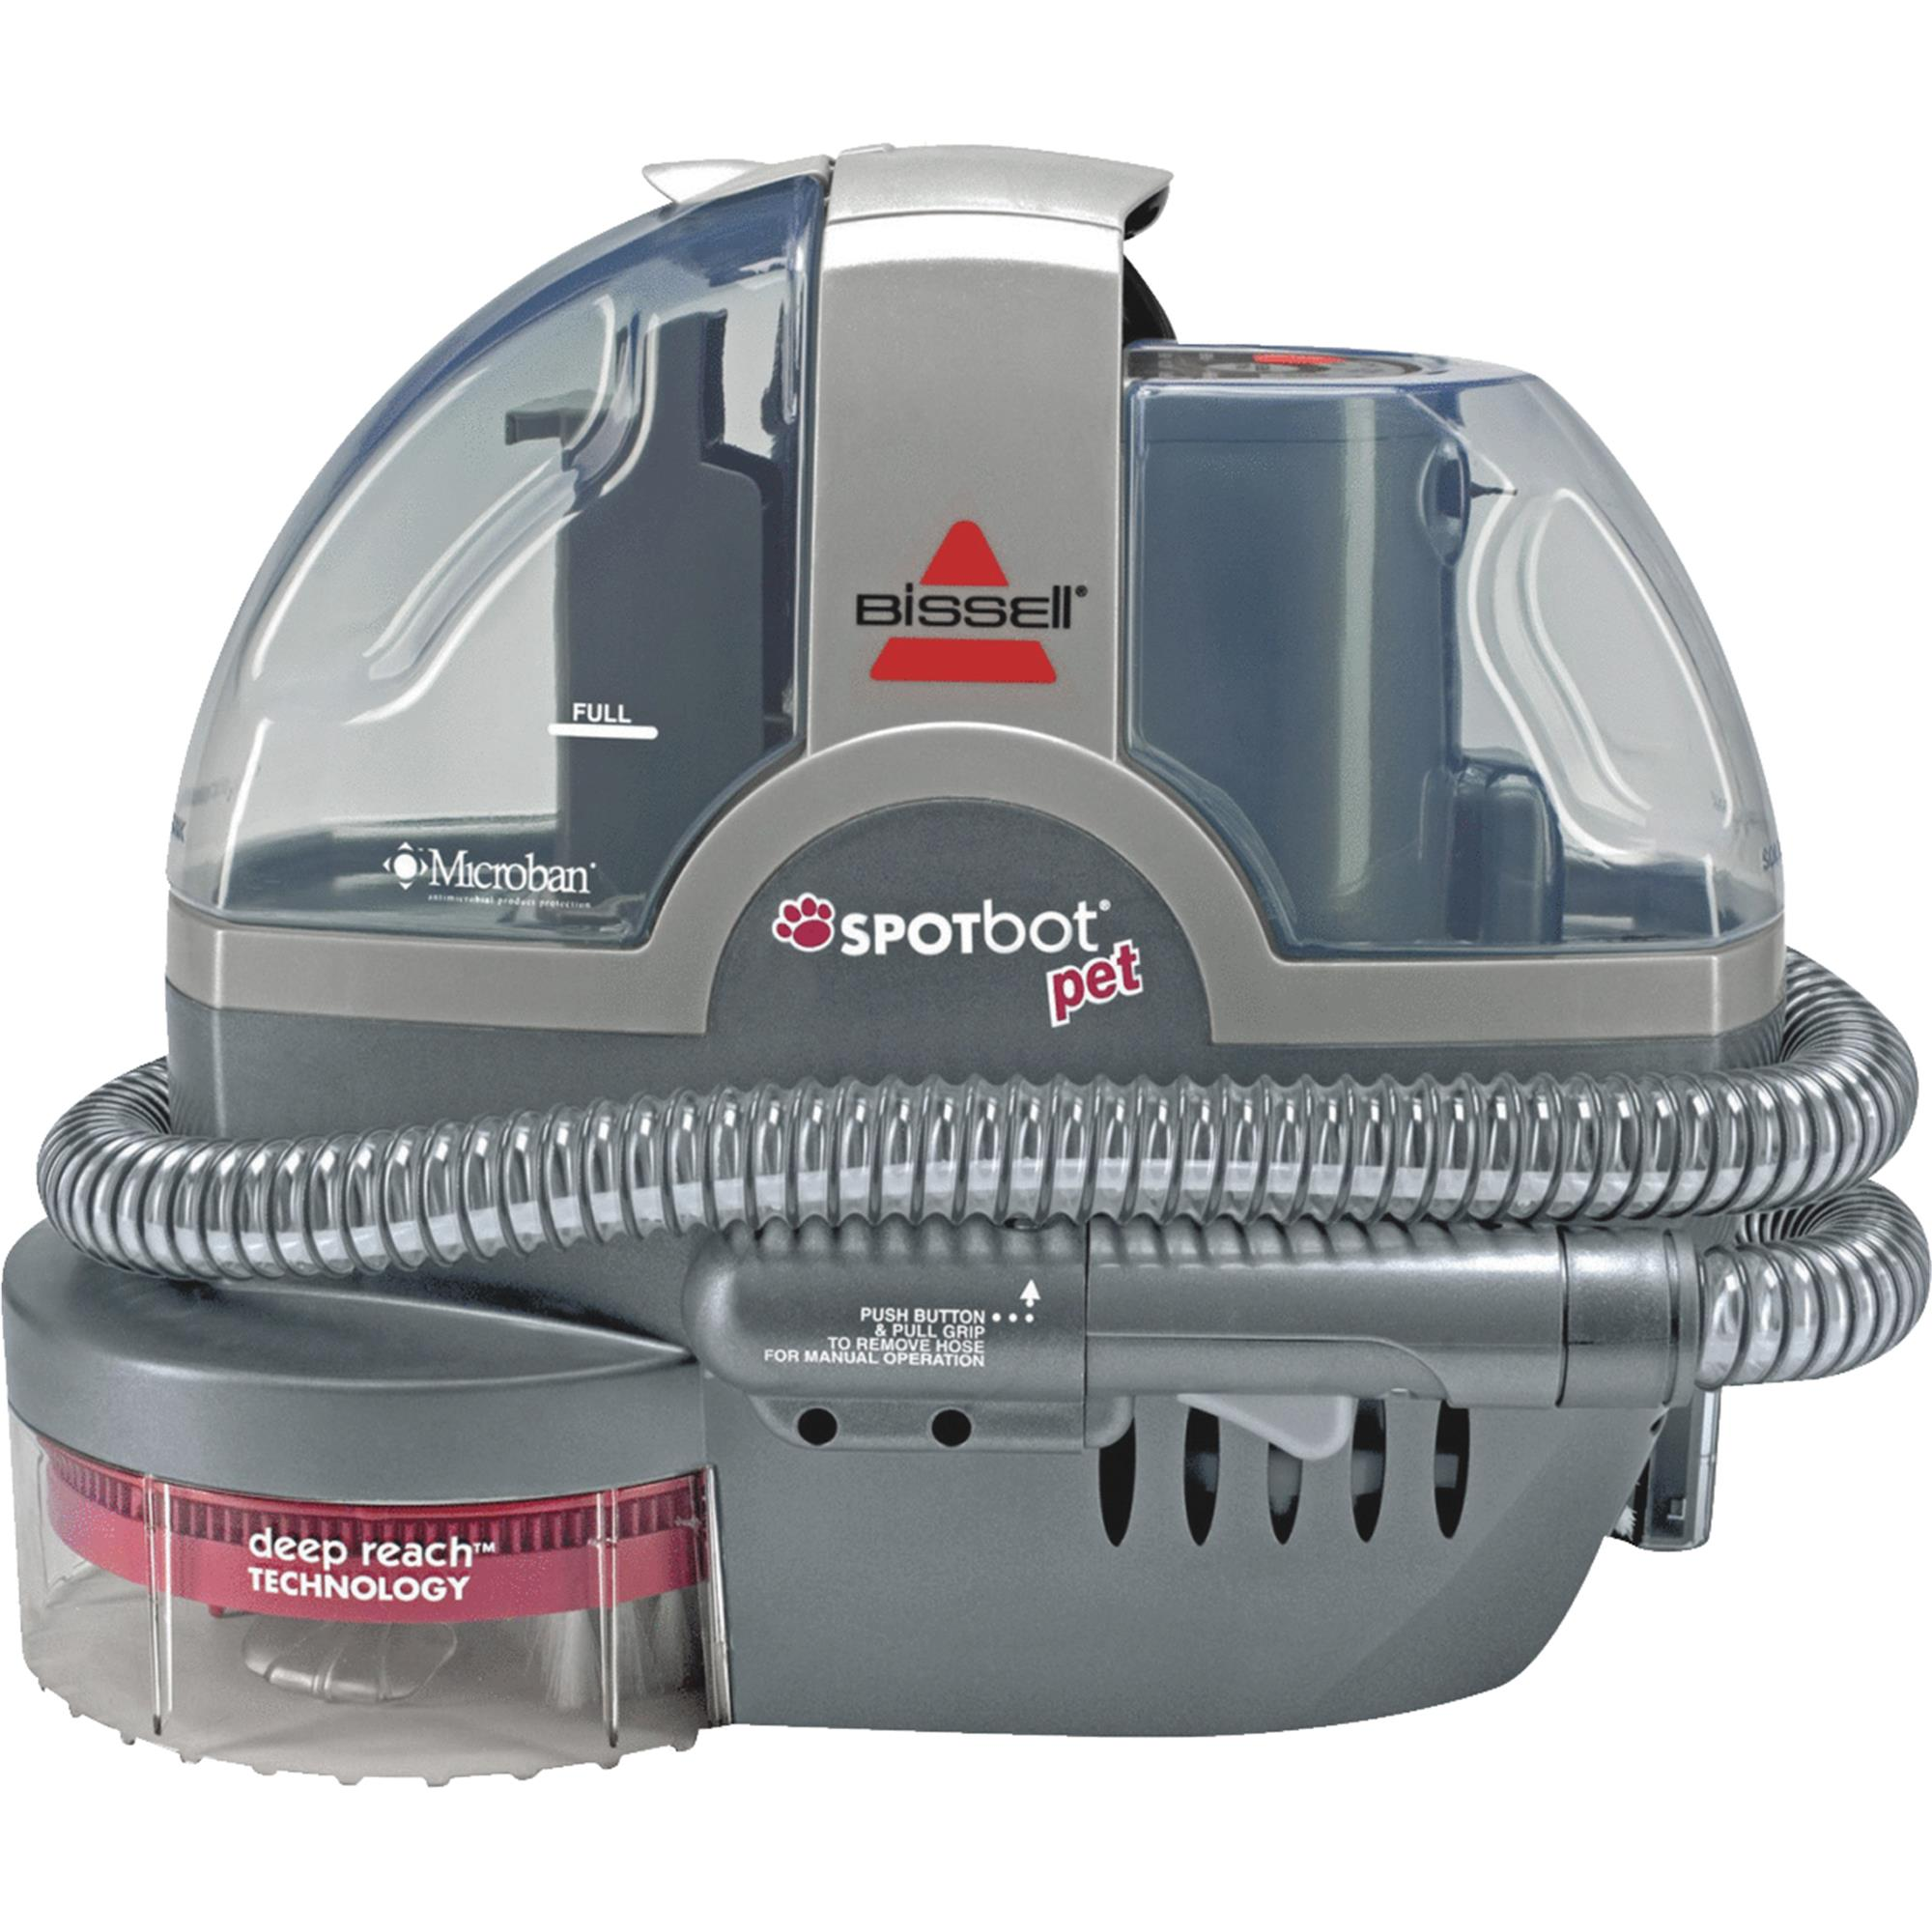 SpotBot Pet Carpet Cleaner